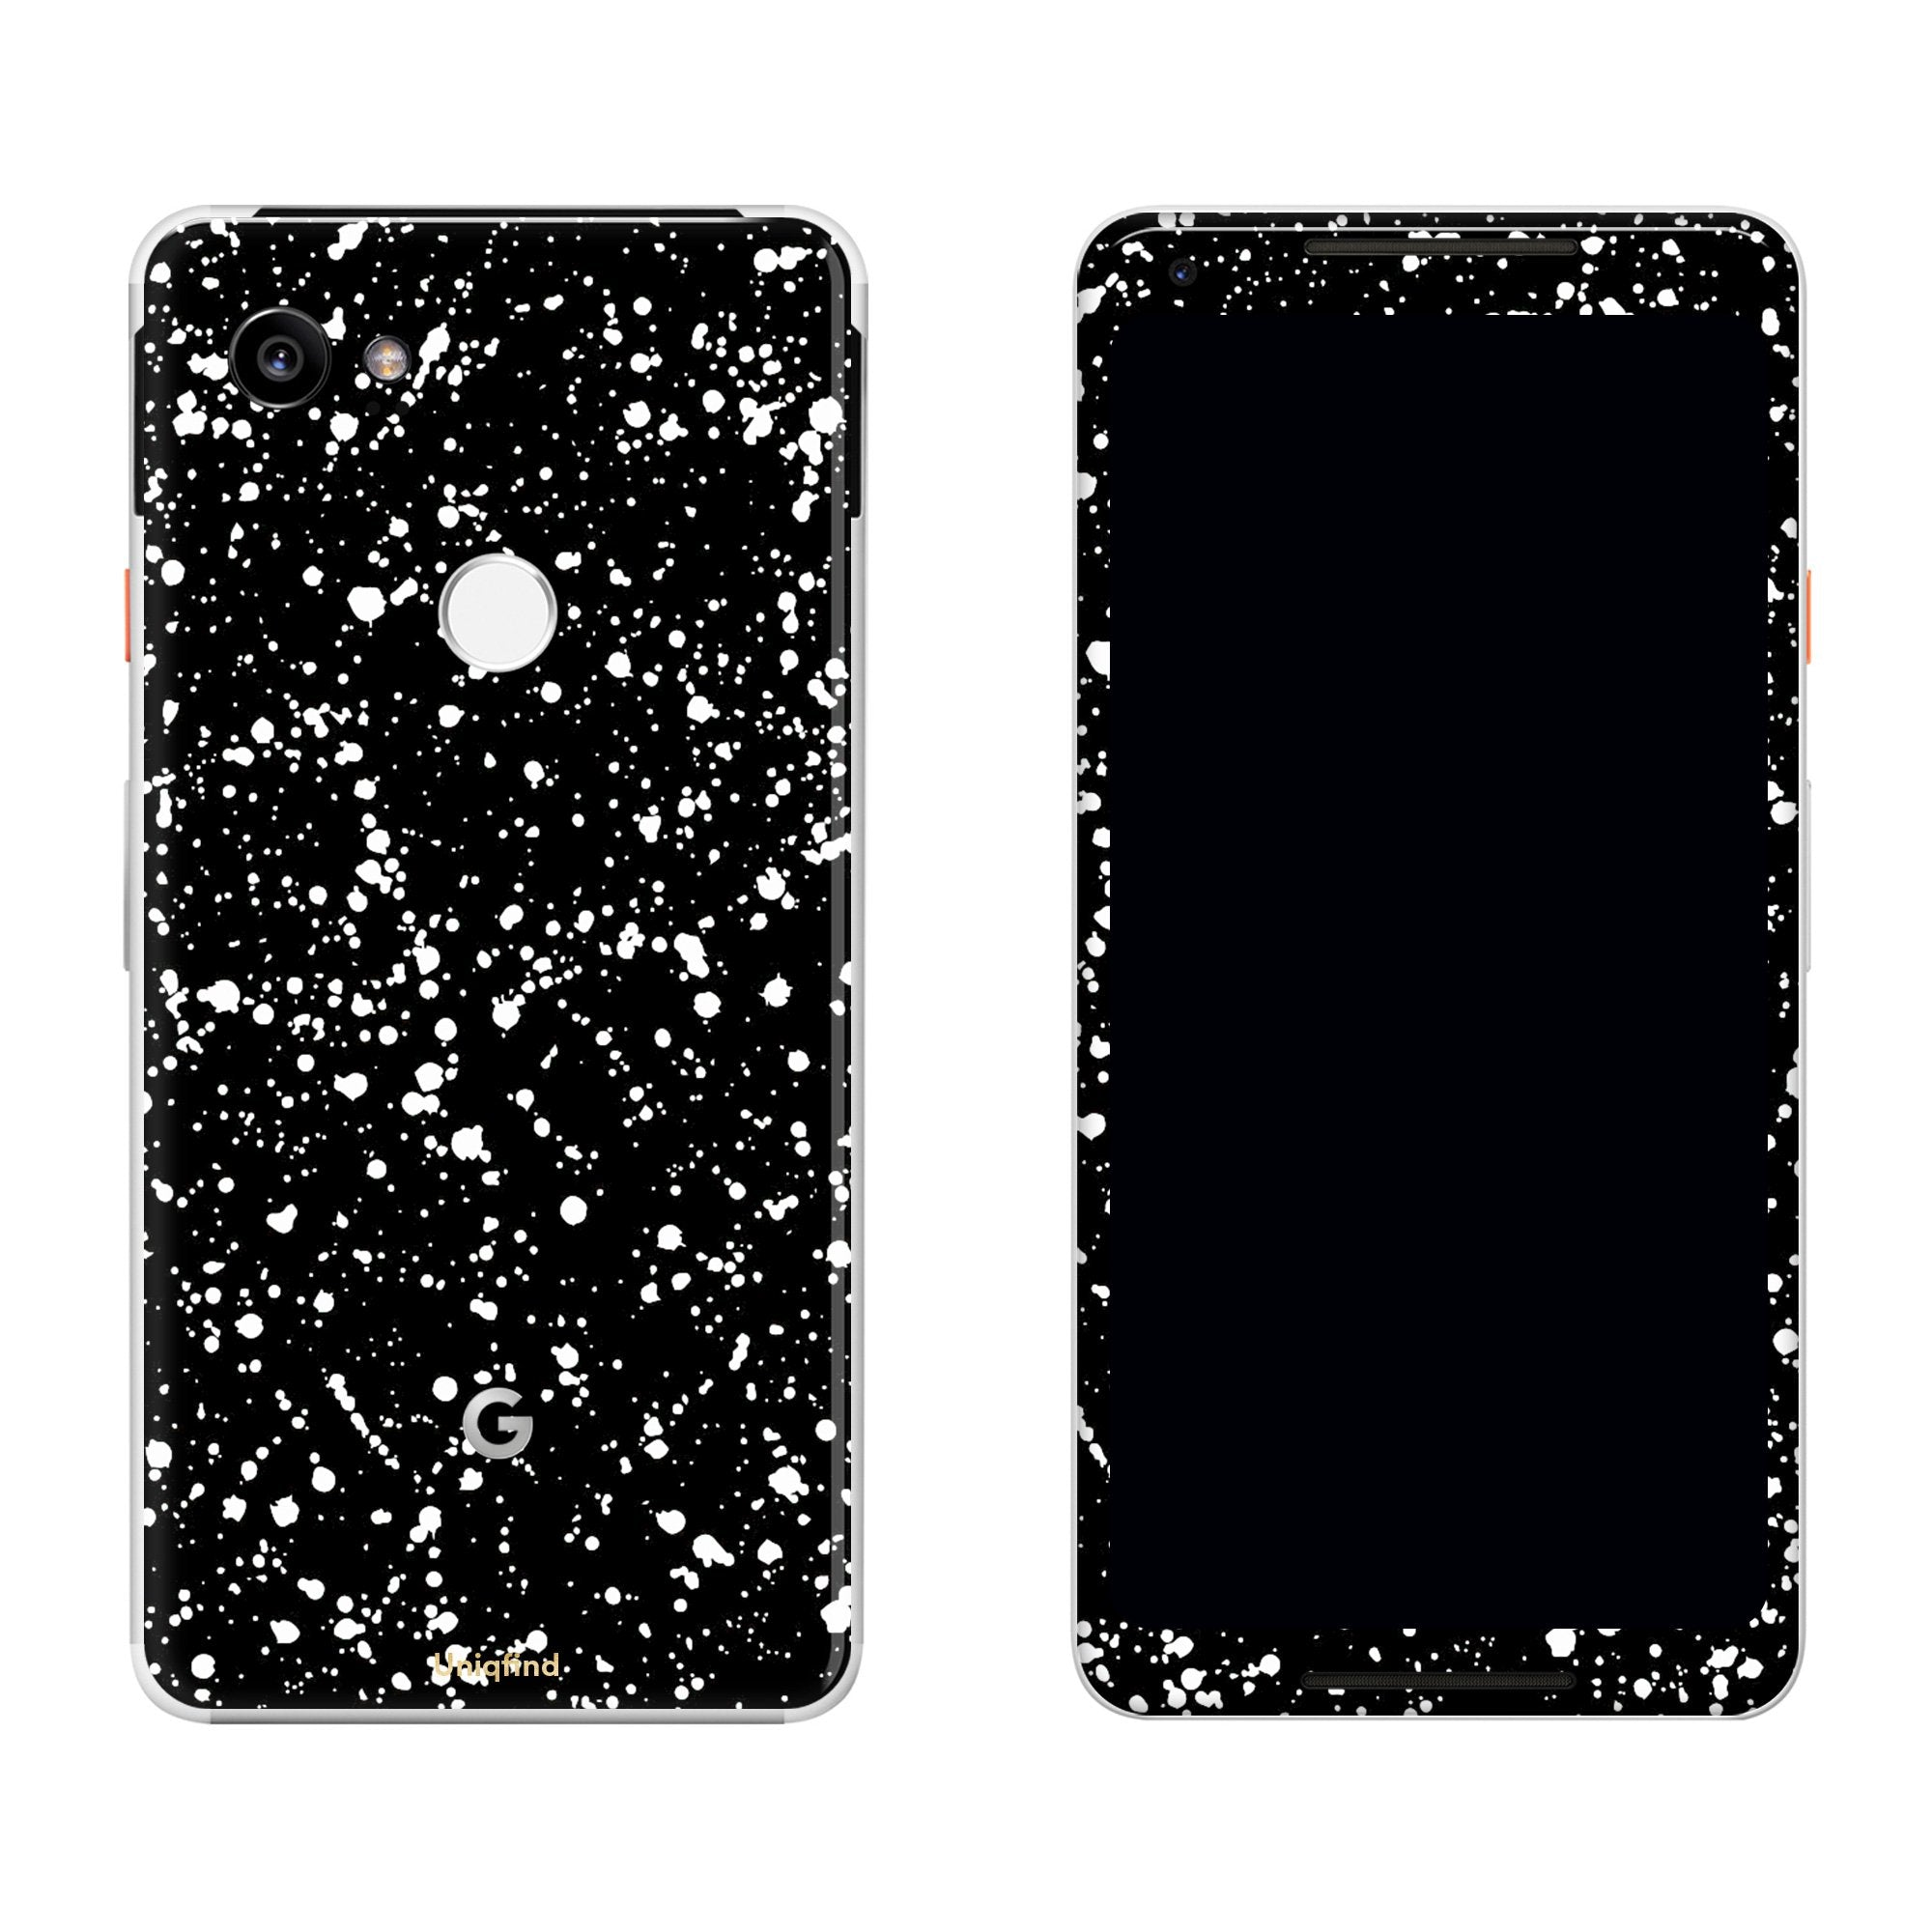 Black Speckle Pixel 2 Skin + Case